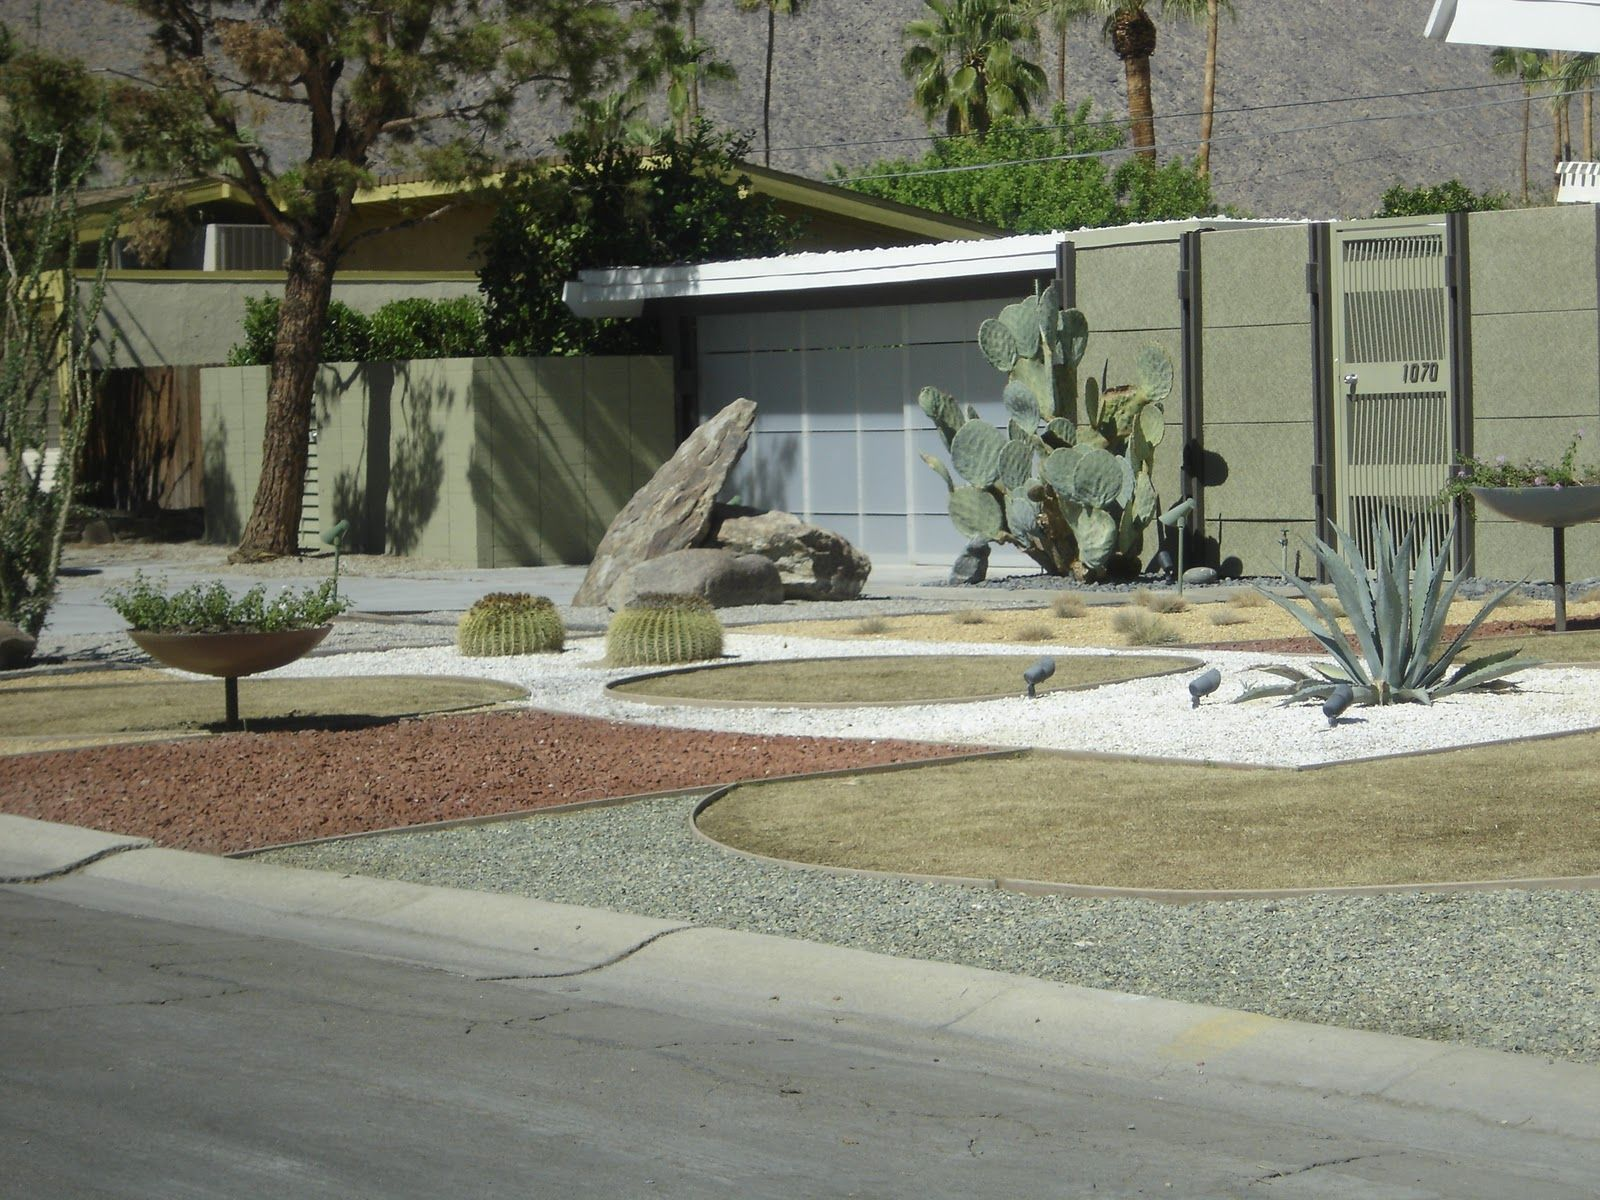 awesome xeriscape   Ranch exterior, Palm springs, Backyard ... on planting design ideas, drought tolerant design ideas, arid landscape design ideas, commercial design ideas, tree design ideas, concrete design ideas, education design ideas, fire pits design ideas, gravel design ideas, stone design ideas, diy design ideas, lawn design ideas, gardening design ideas, texas design ideas, family design ideas, cactus design ideas, dryscape ideas, xeriscaping ideas, formal design ideas, winter design ideas,